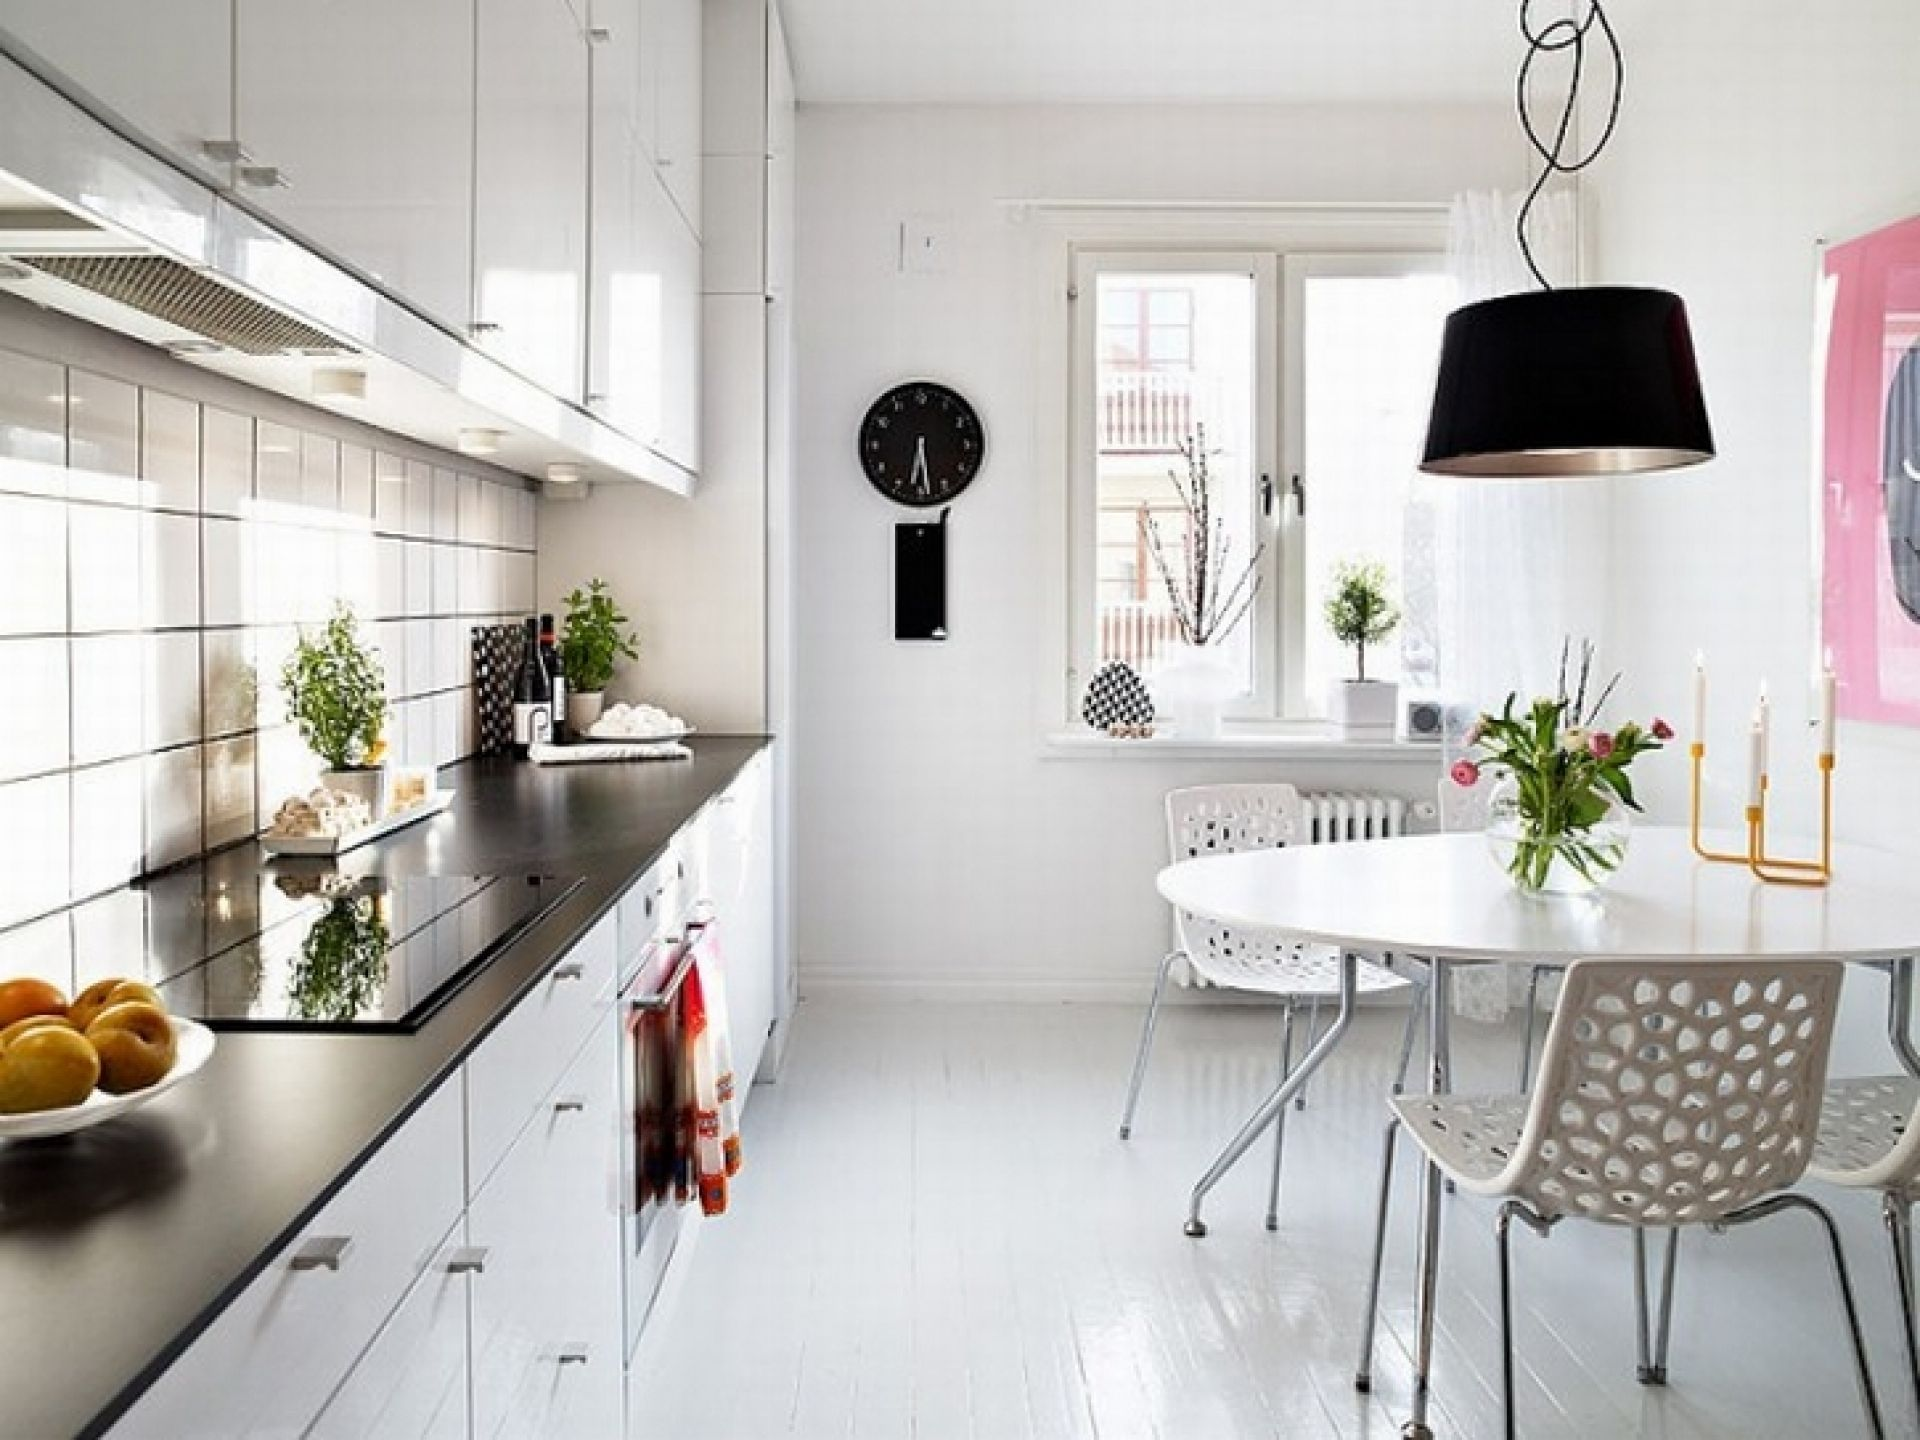 Small Kitchen And Dining Room Design Ideas  Httpenricbataller Enchanting Small Kitchen And Dining Design 2018